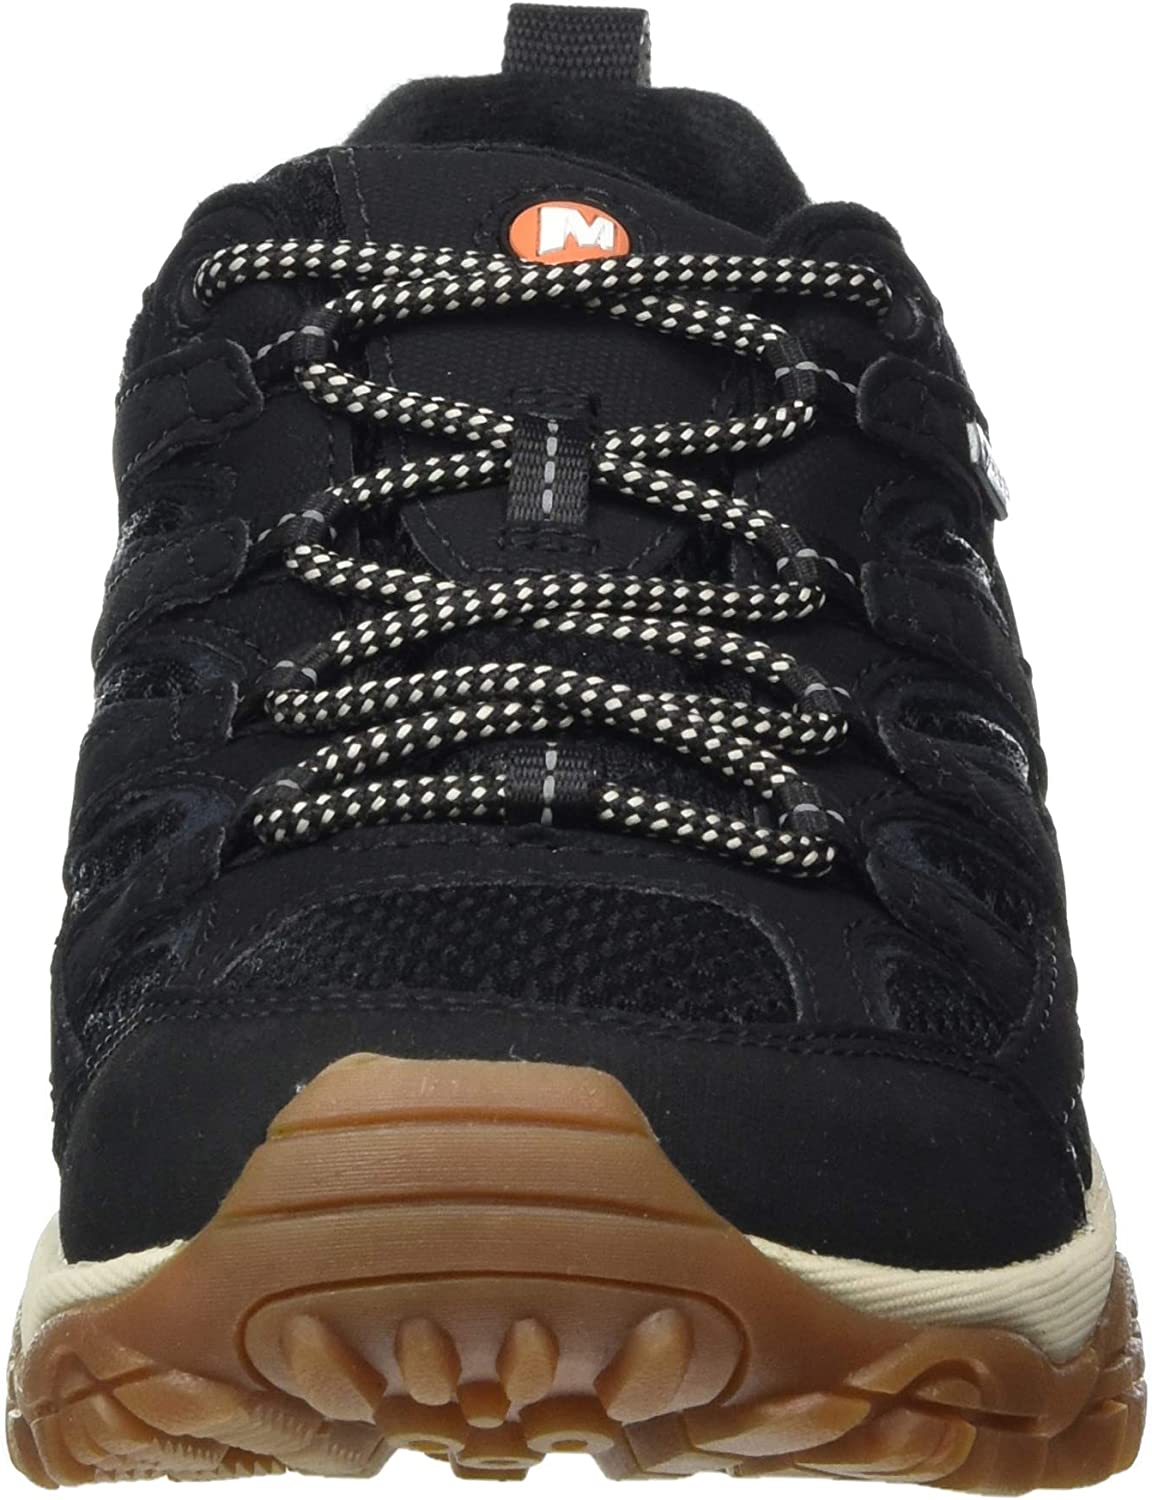 Merrell Womens Moab 2 GTX Low Rise Hiking Shoes